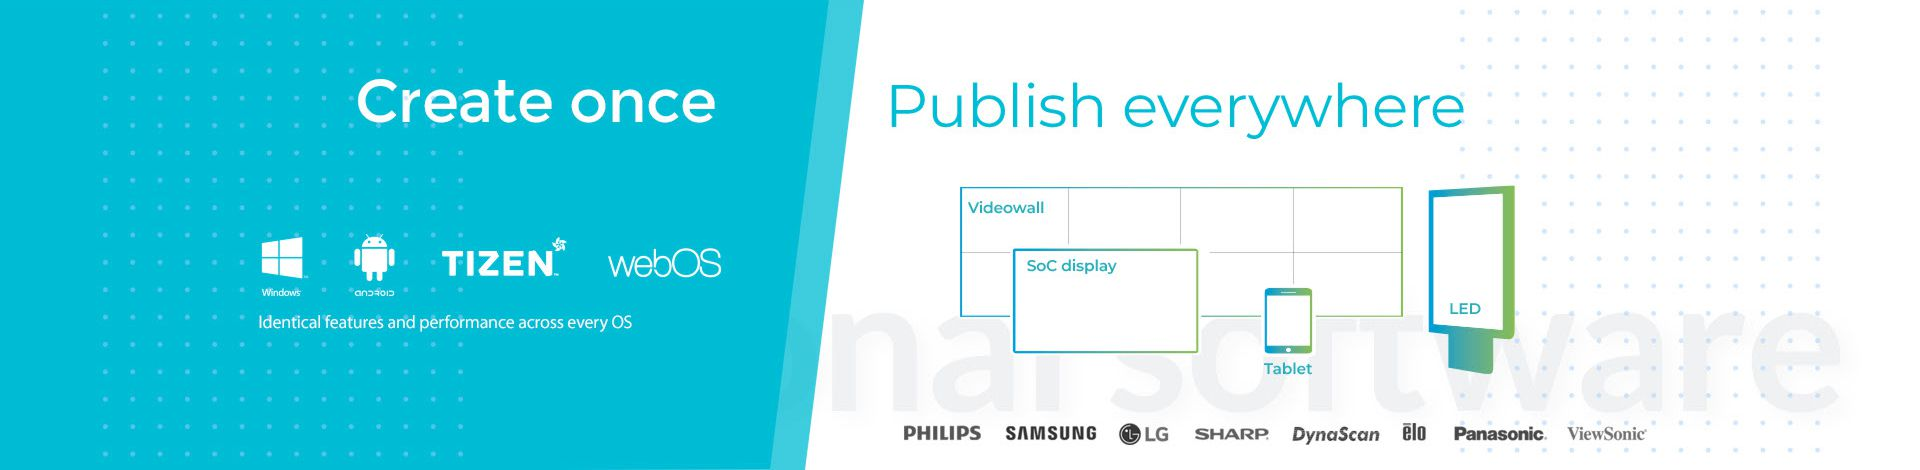 create once publish everywhere